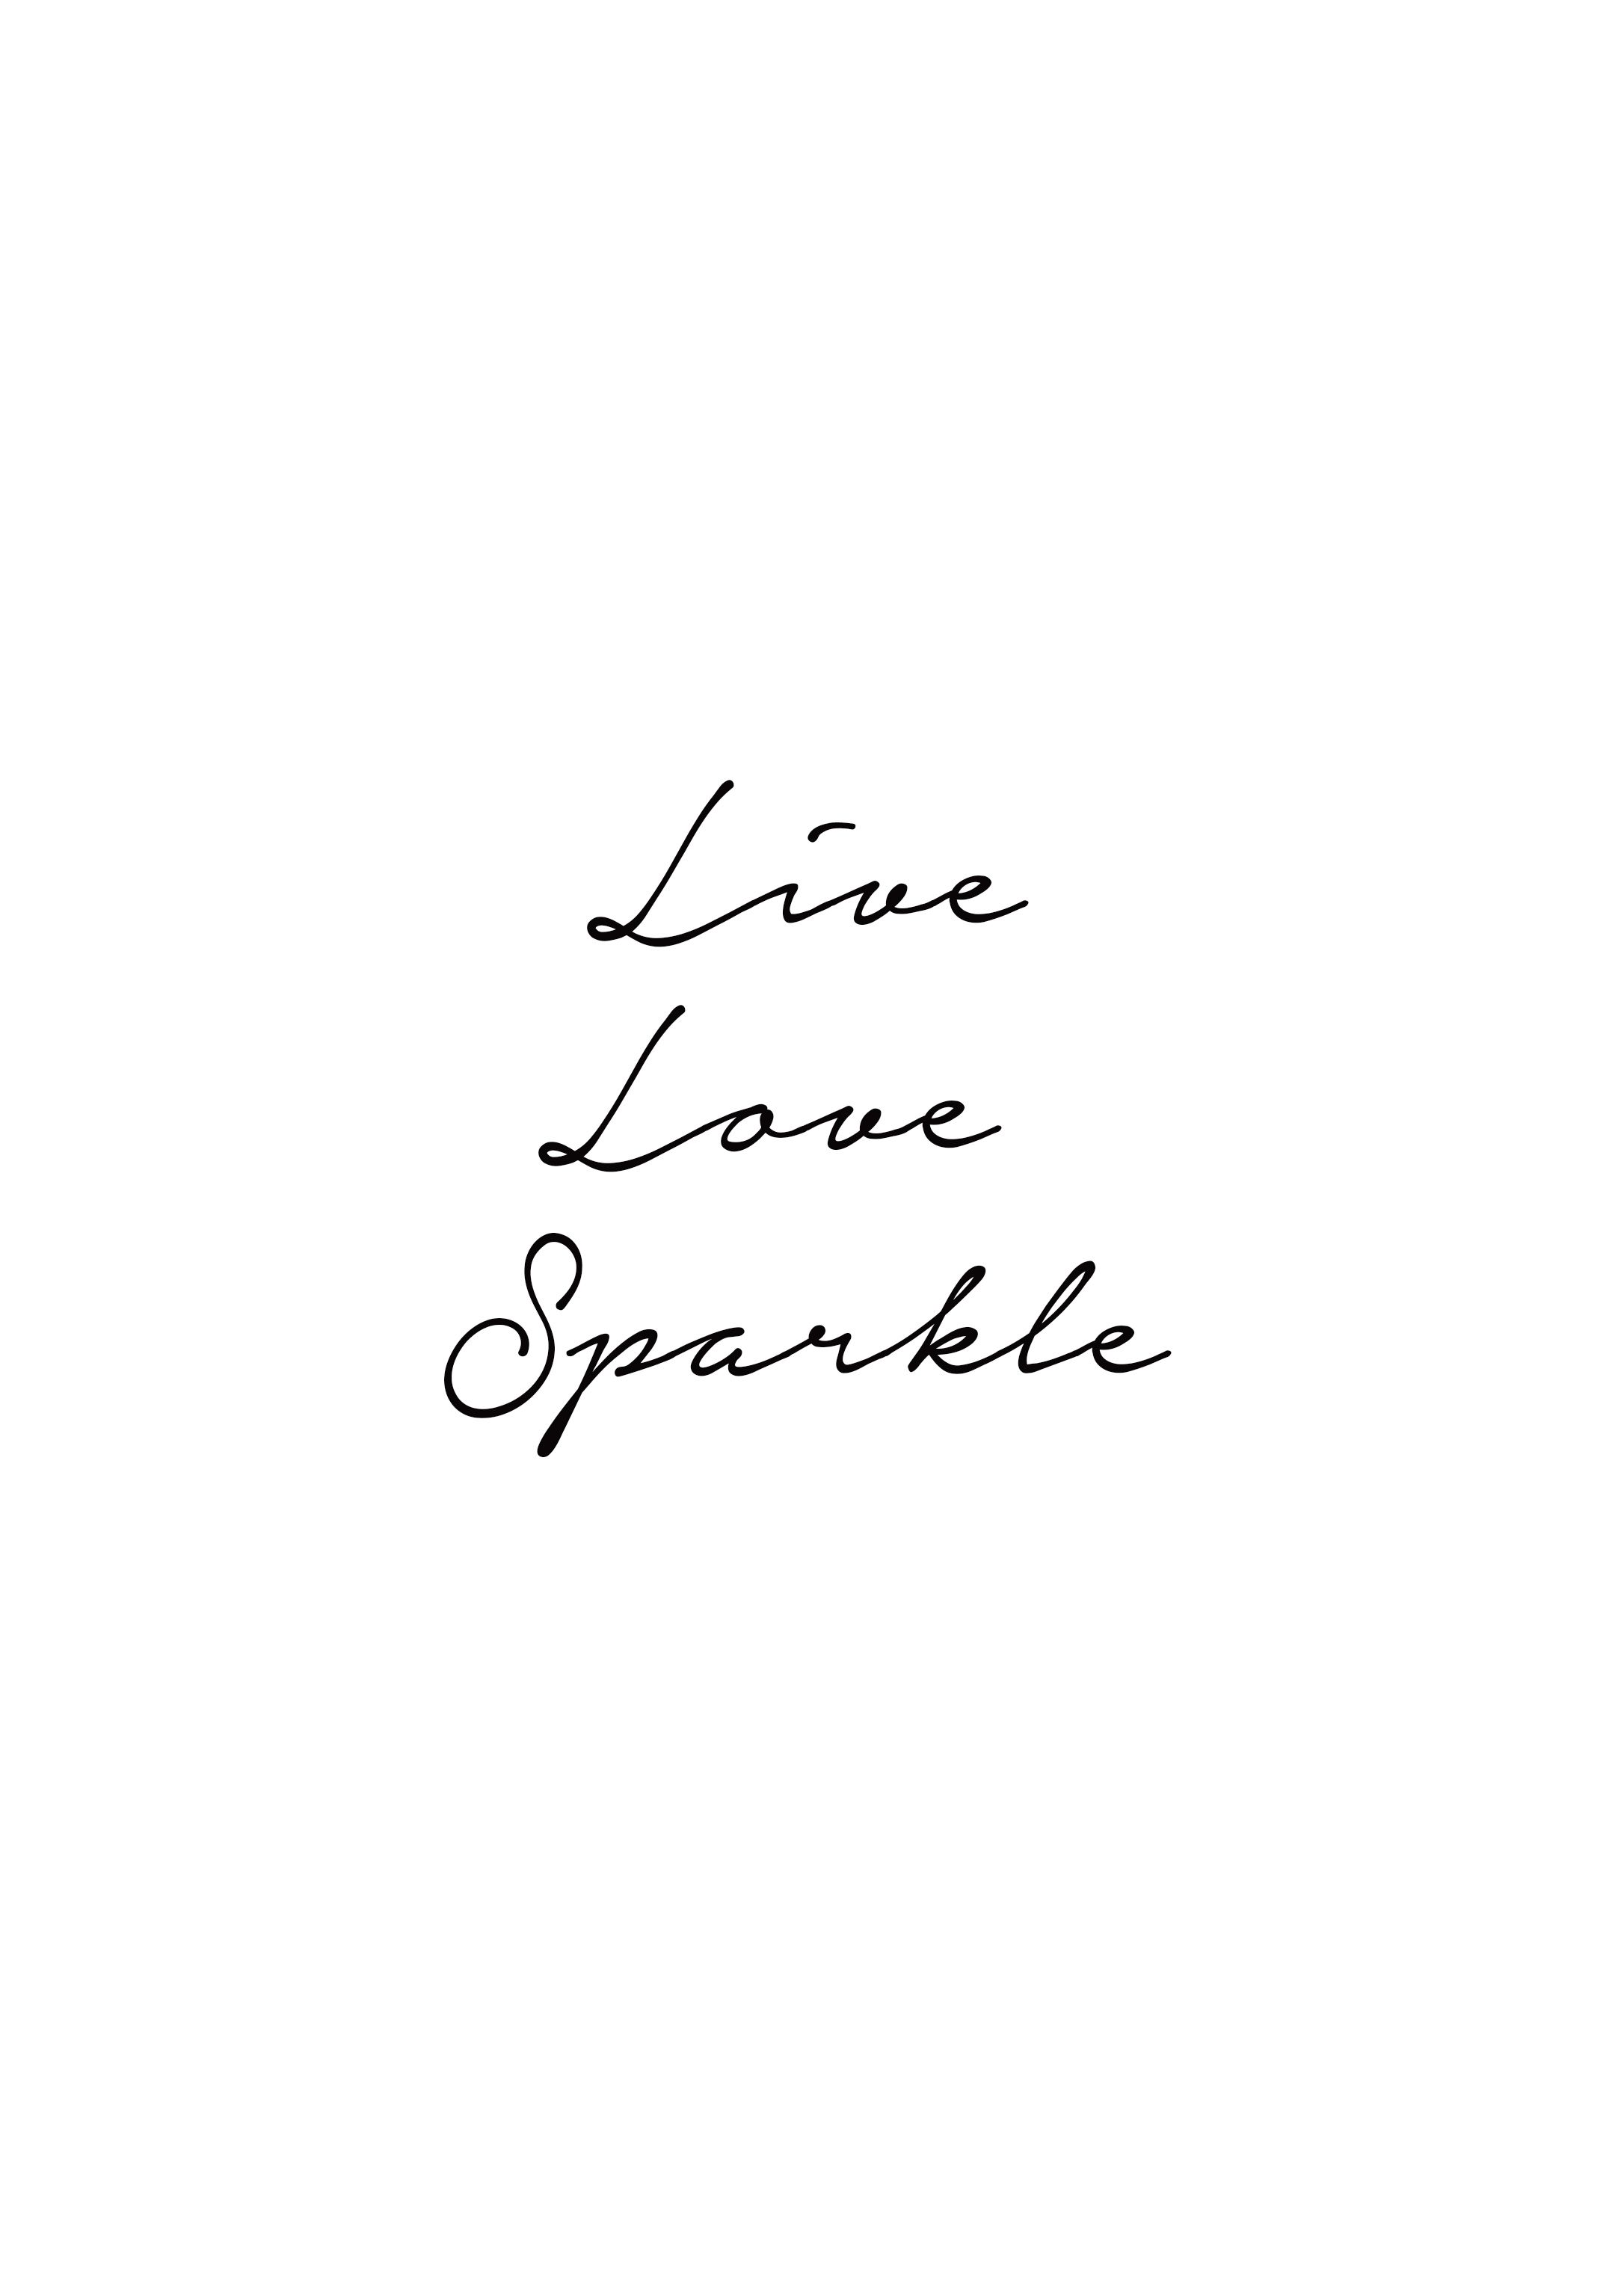 This Is Exactly What Wording I Was Thinking Live Love Sparkle